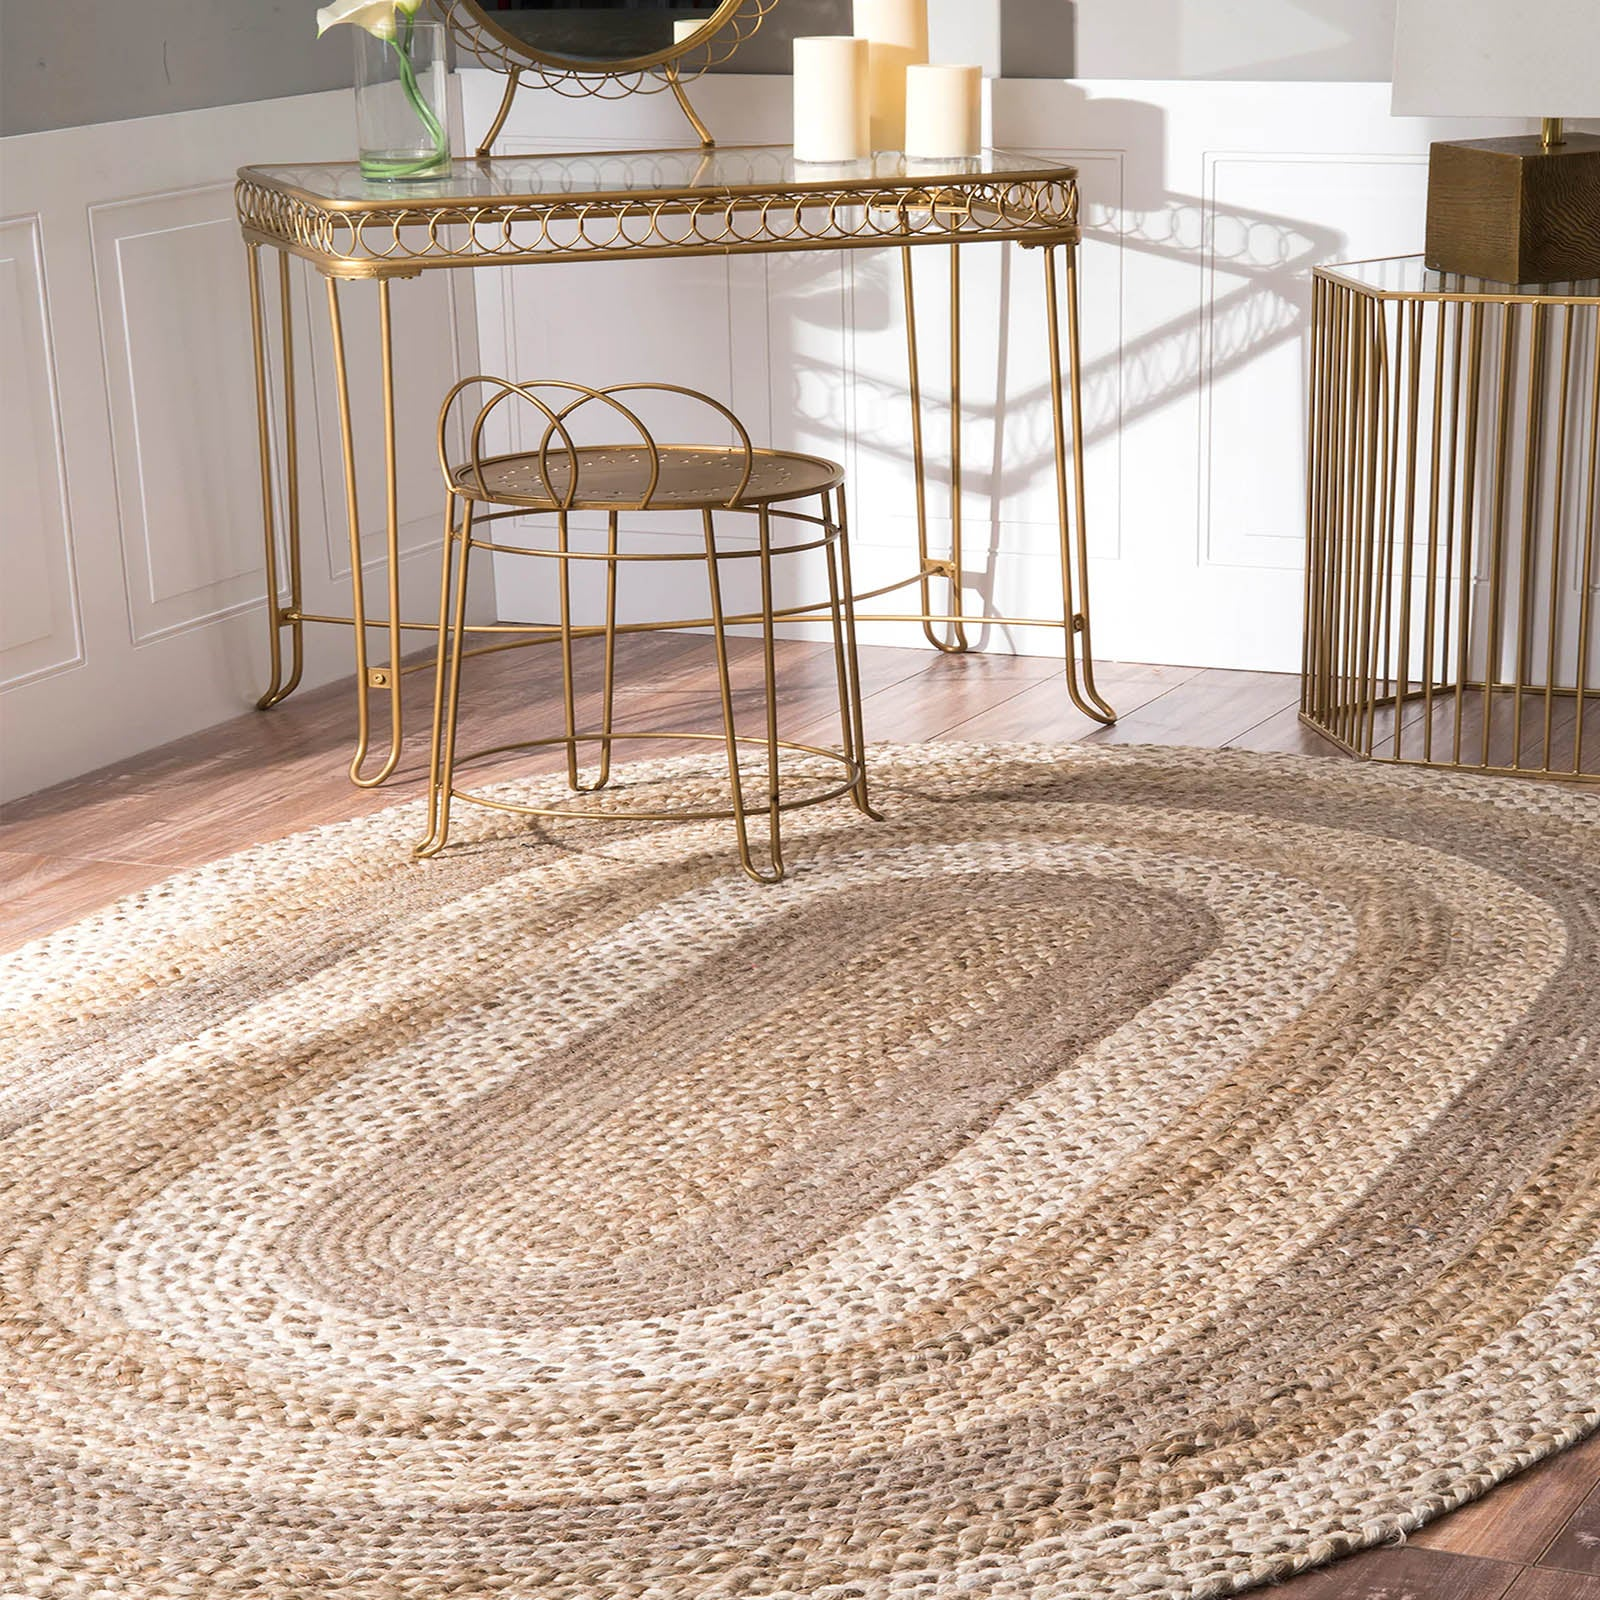 160X220 cm Braided handmade Jute Rug JH-2344-L -  160X220 سم سجادة مصنوعة يدويًا من الجوت - Shop Online Furniture and Home Decor Store in Dubai, UAE at ebarza